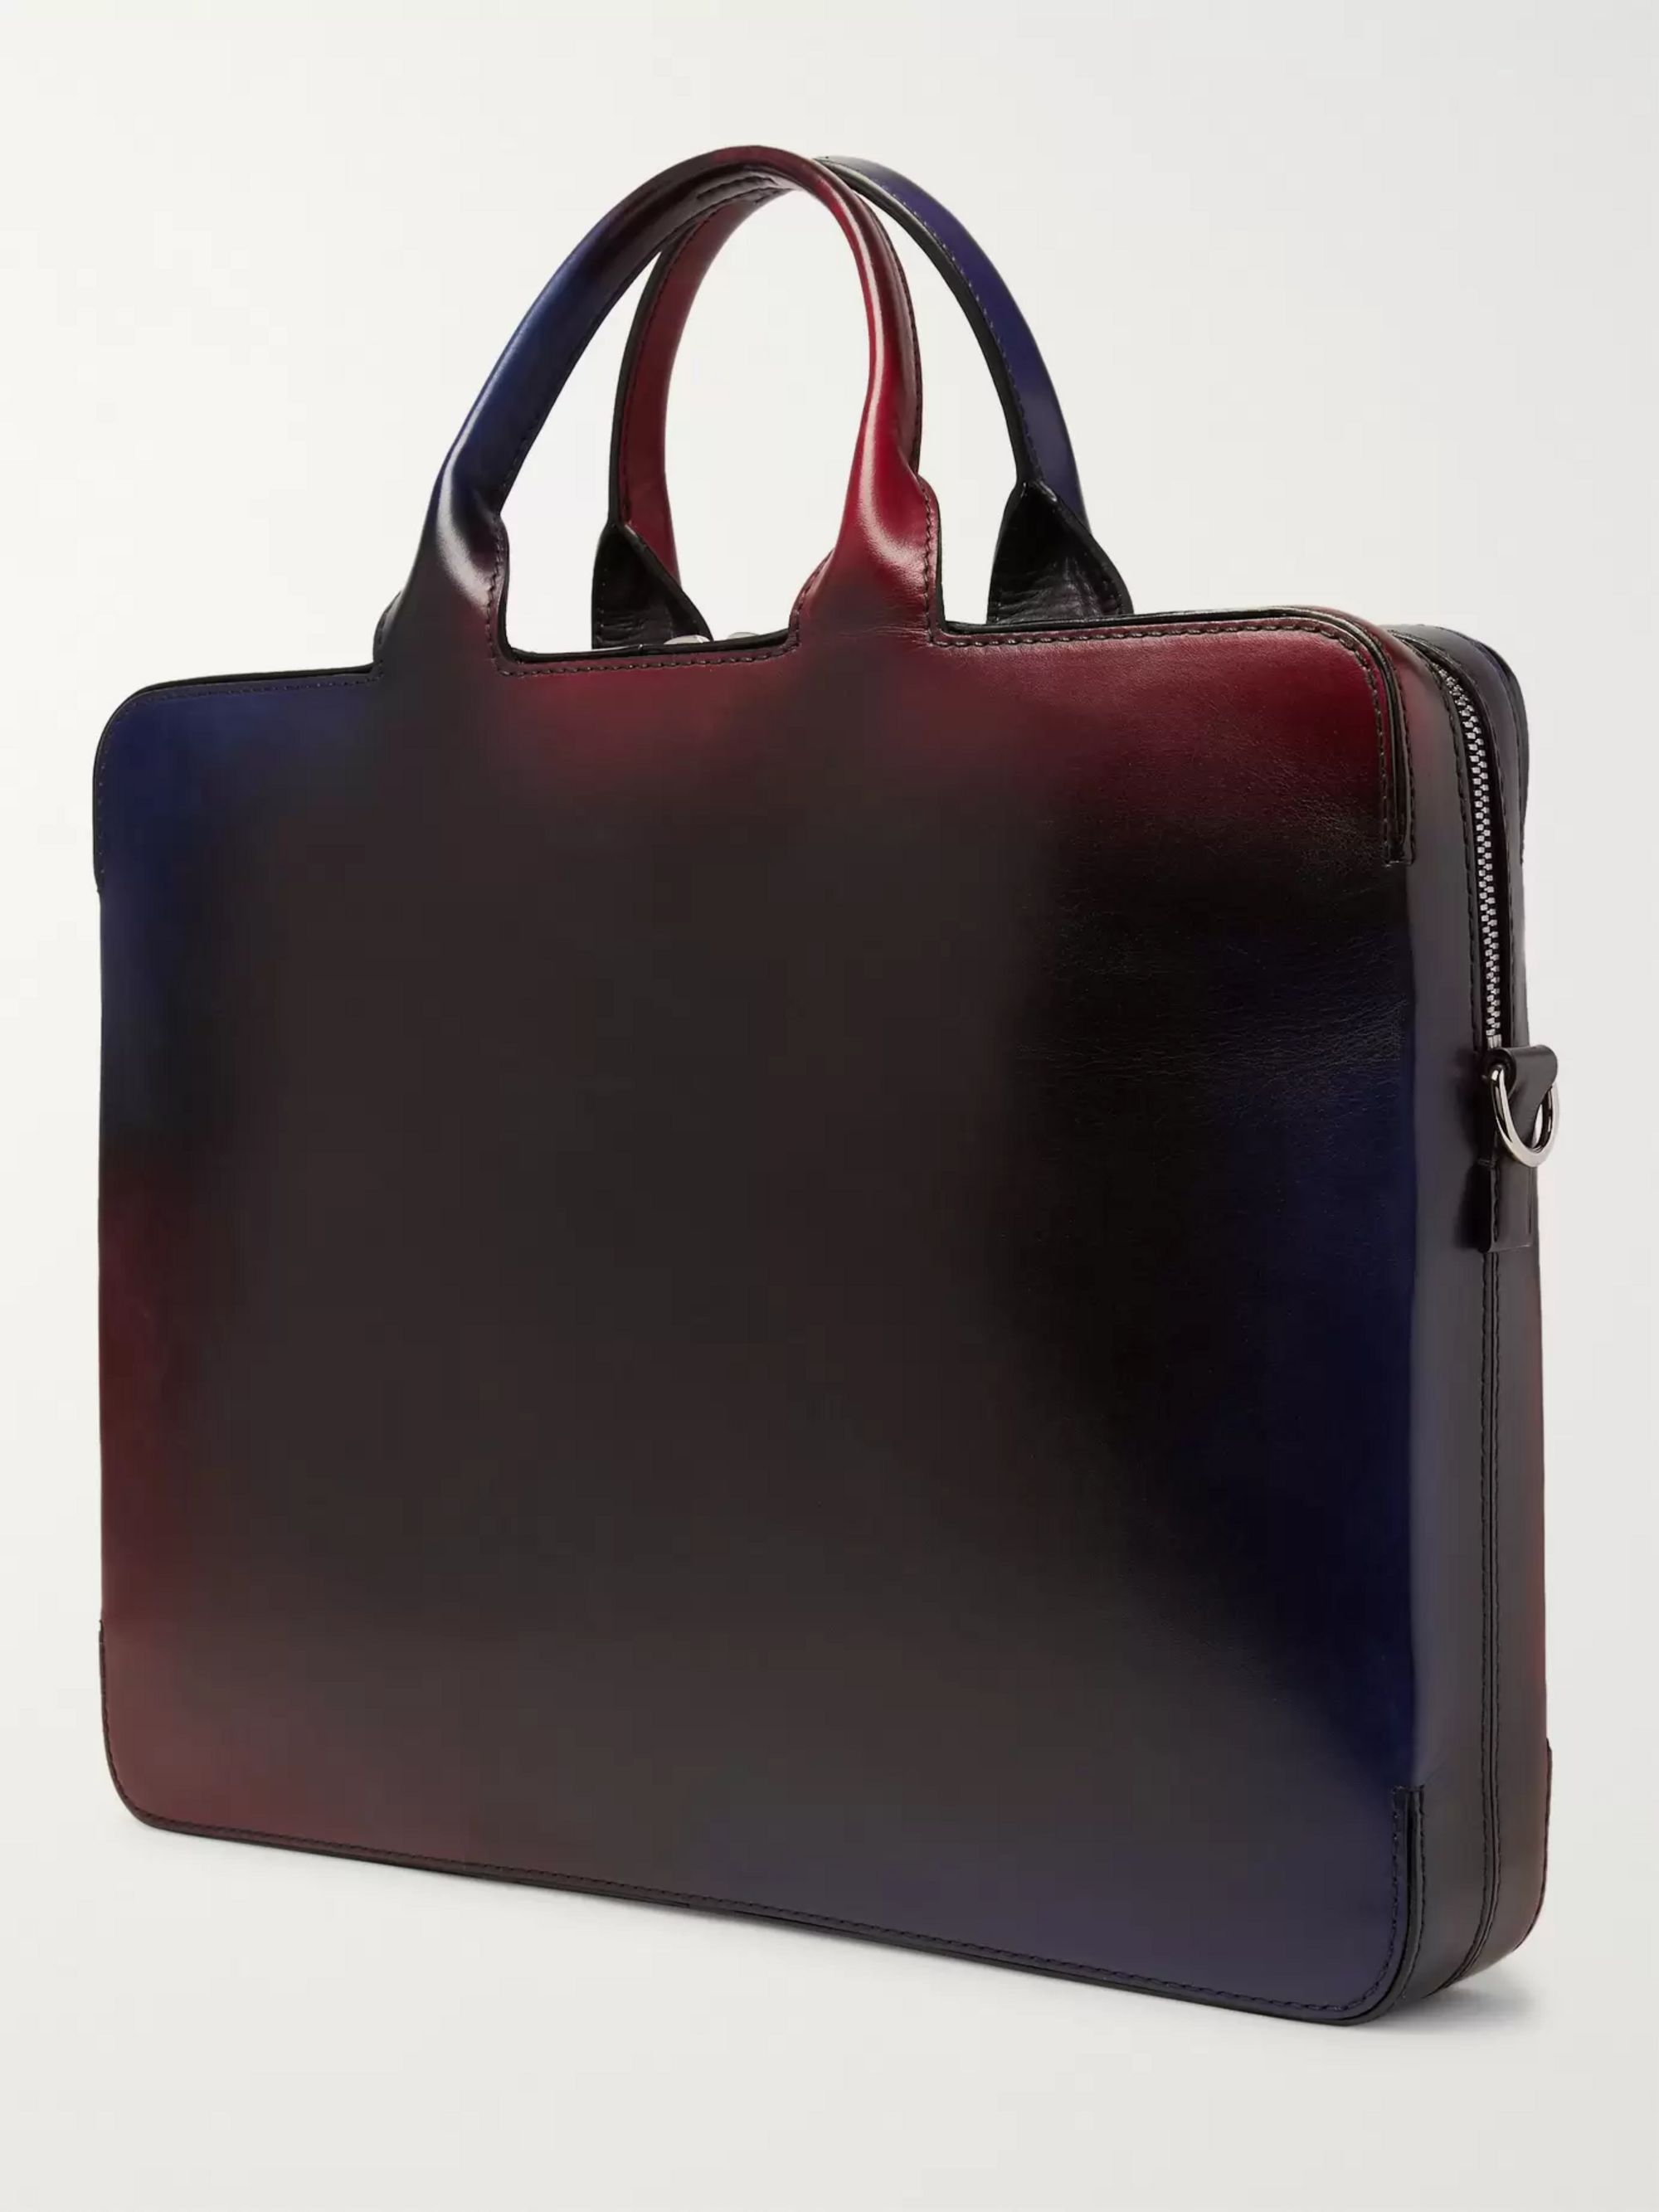 Berluti Profil 3 Venezia Leather Briefcase